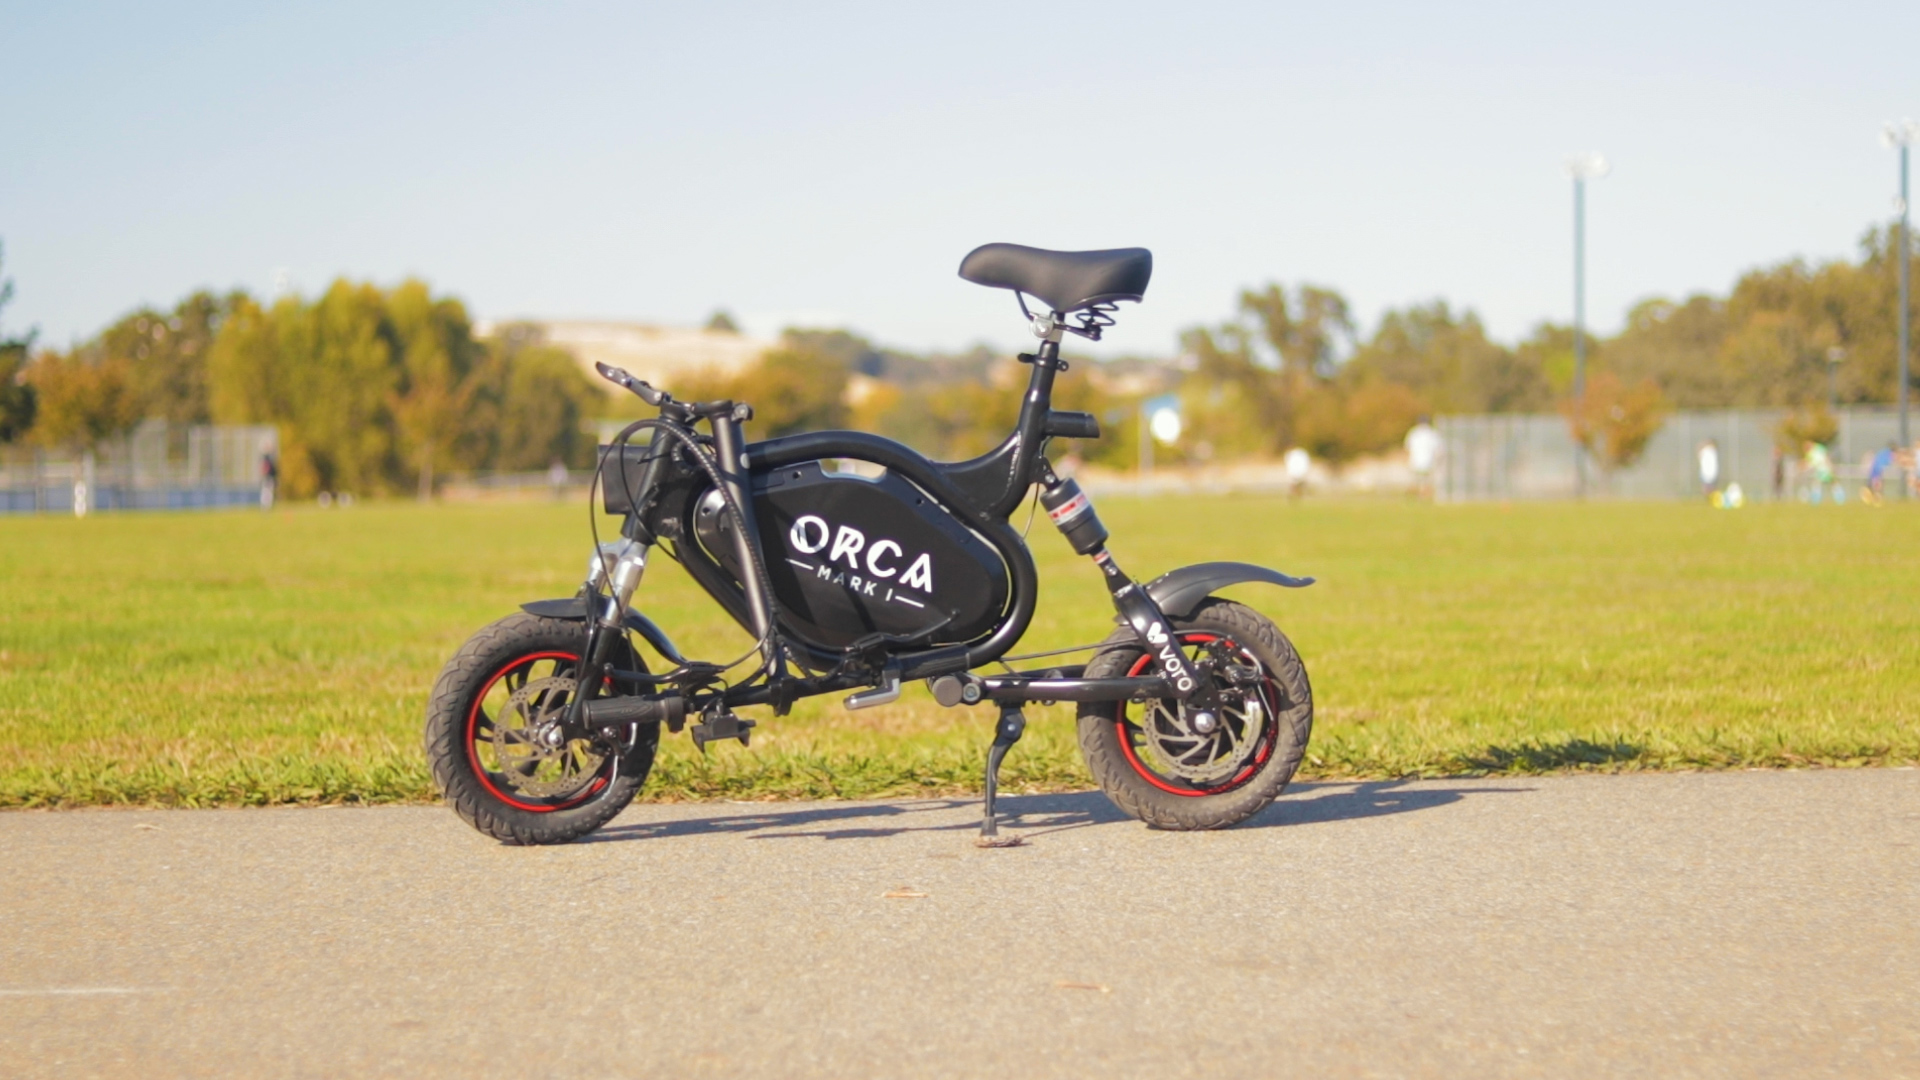 voro-motors-orca-mark-1-electric-scooter-review-2019-folded.jpg